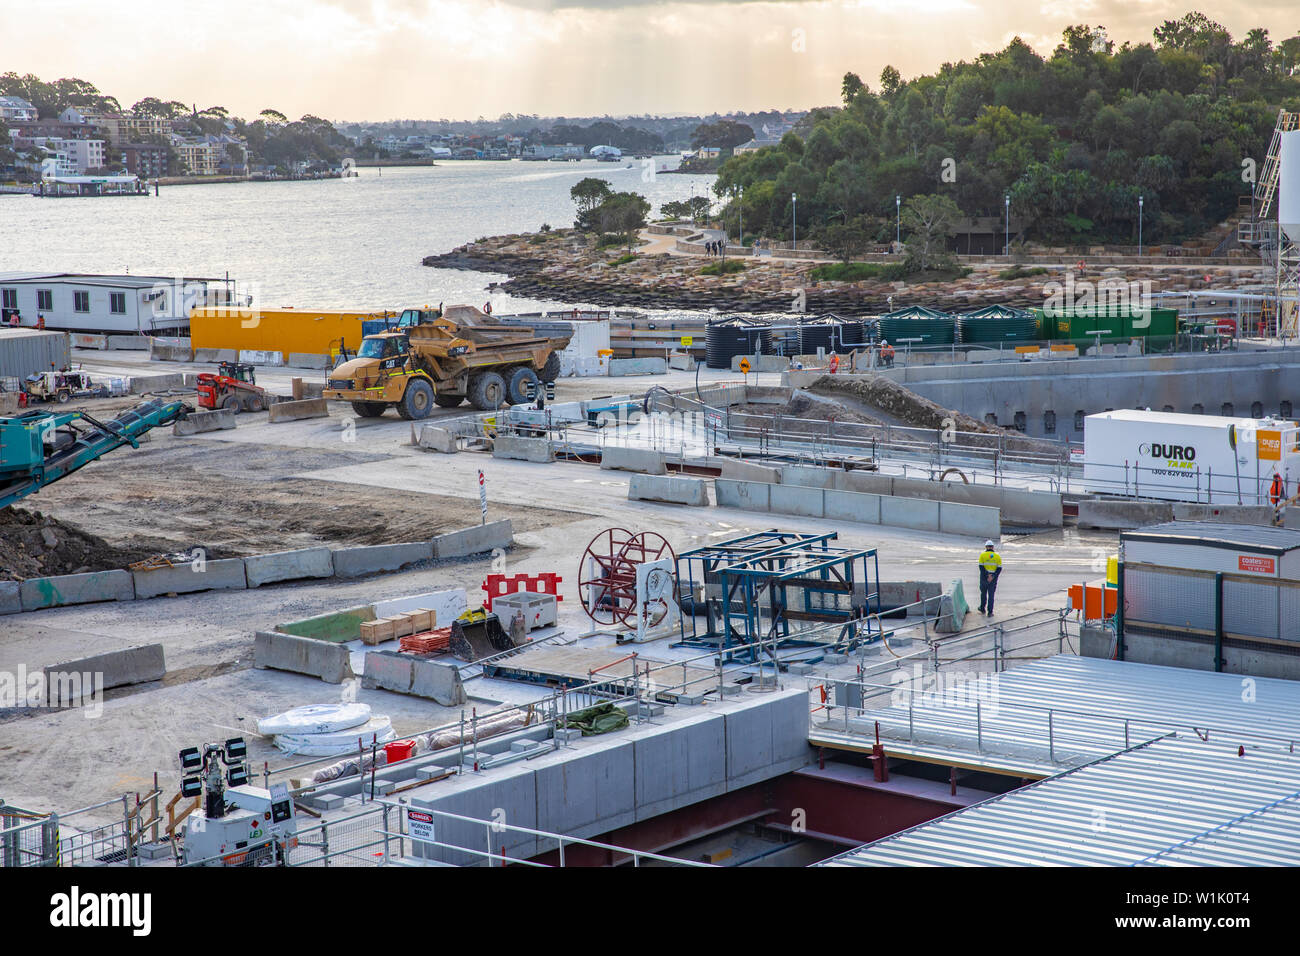 Sydney, construction work at Barangaroo in Sydney city centre,Australia - Stock Image